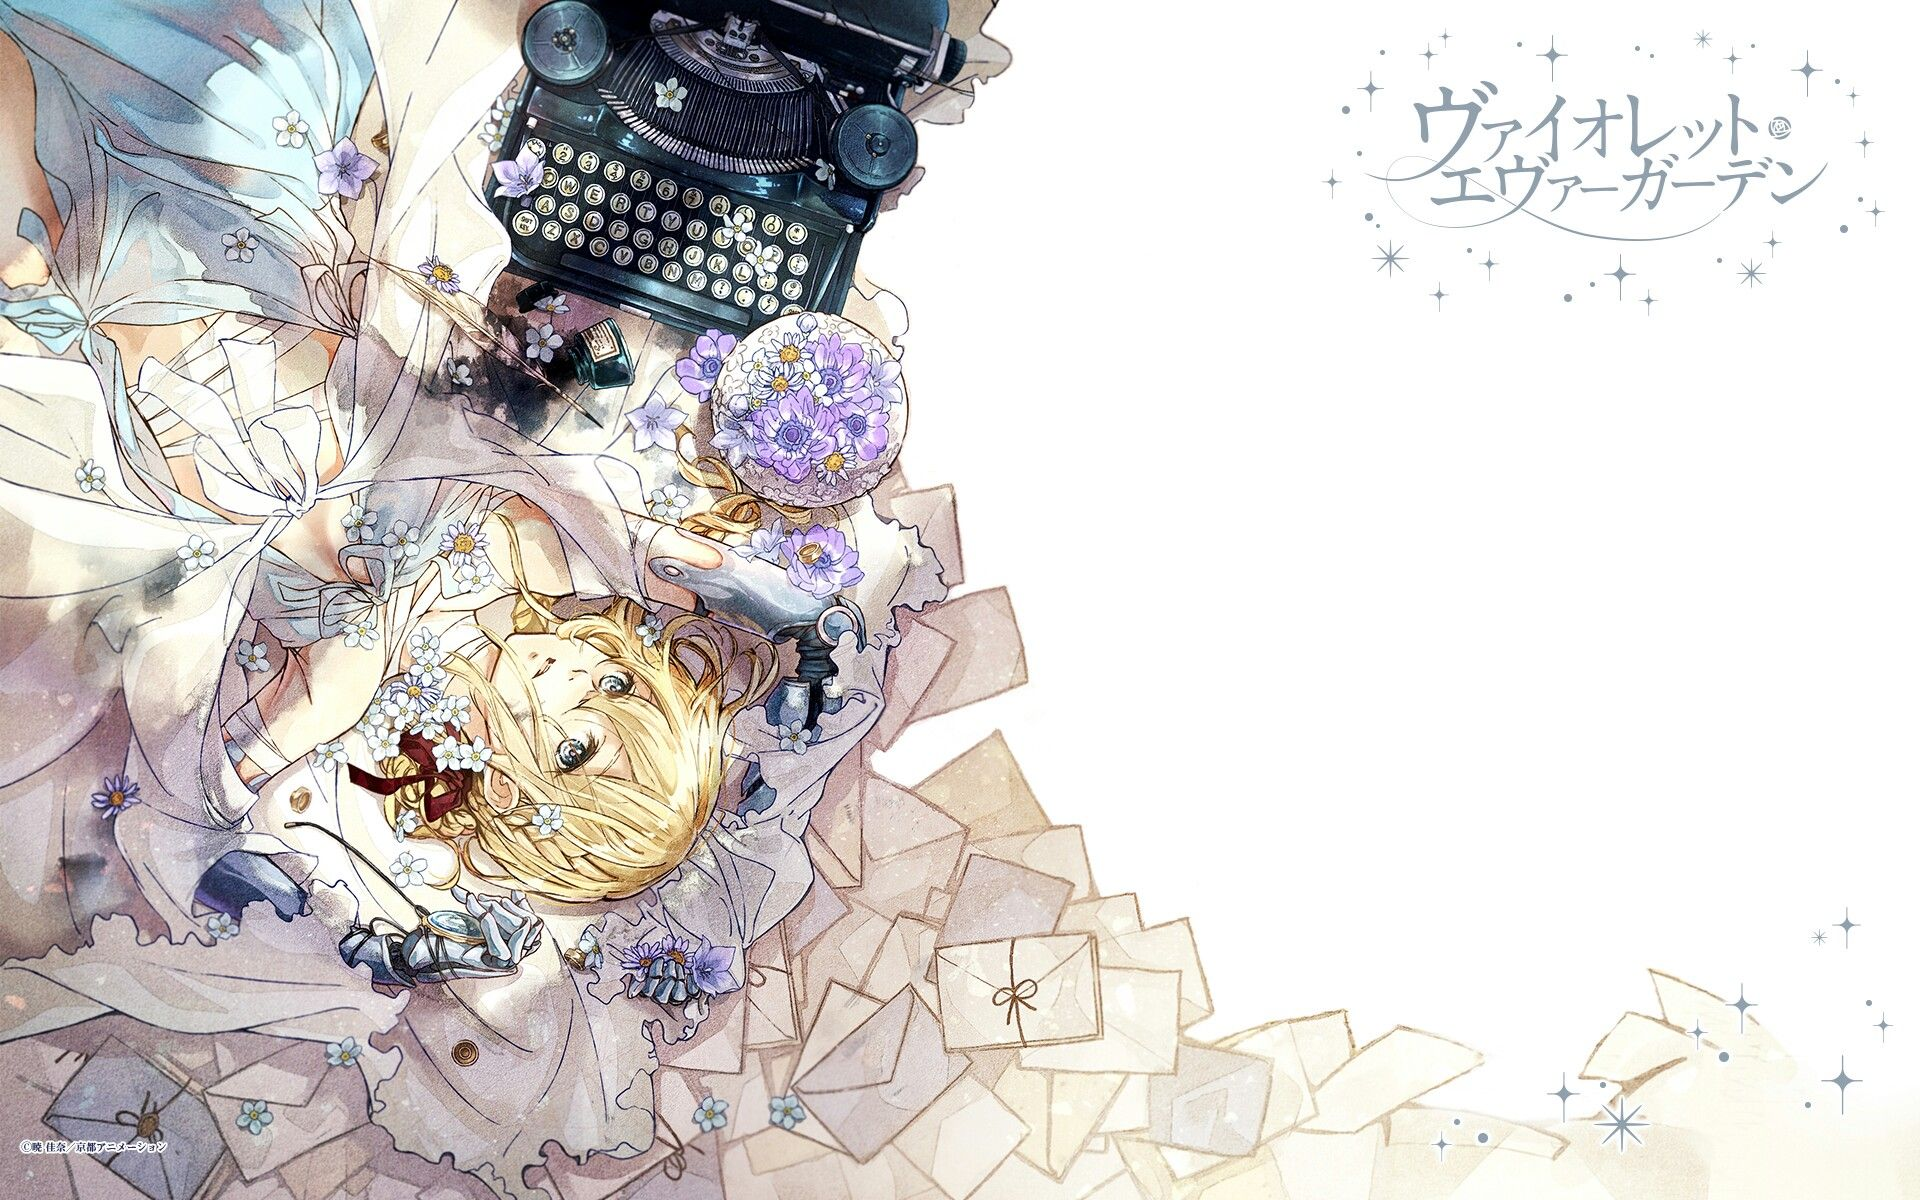 2018 年の violet evergarden light novel volume 2 wallpaper art of